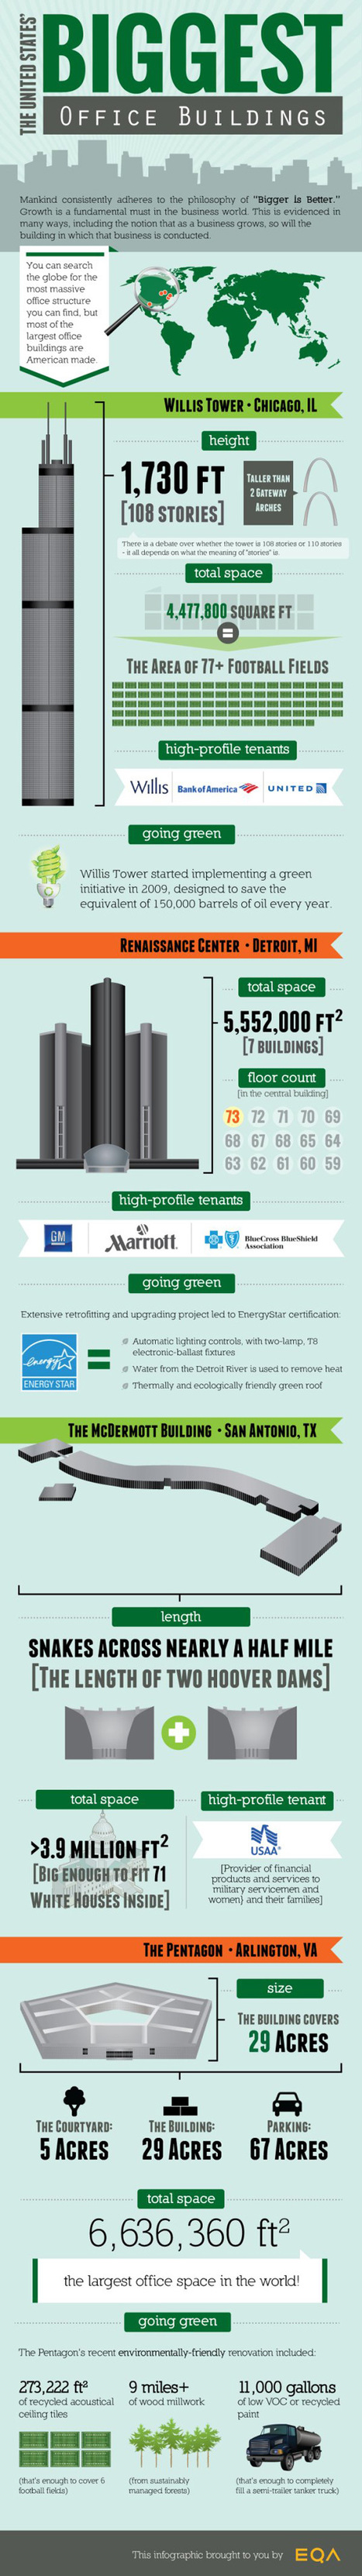 Charting the Greenest Office Buildings in the United States | green infographics | Scoop.it